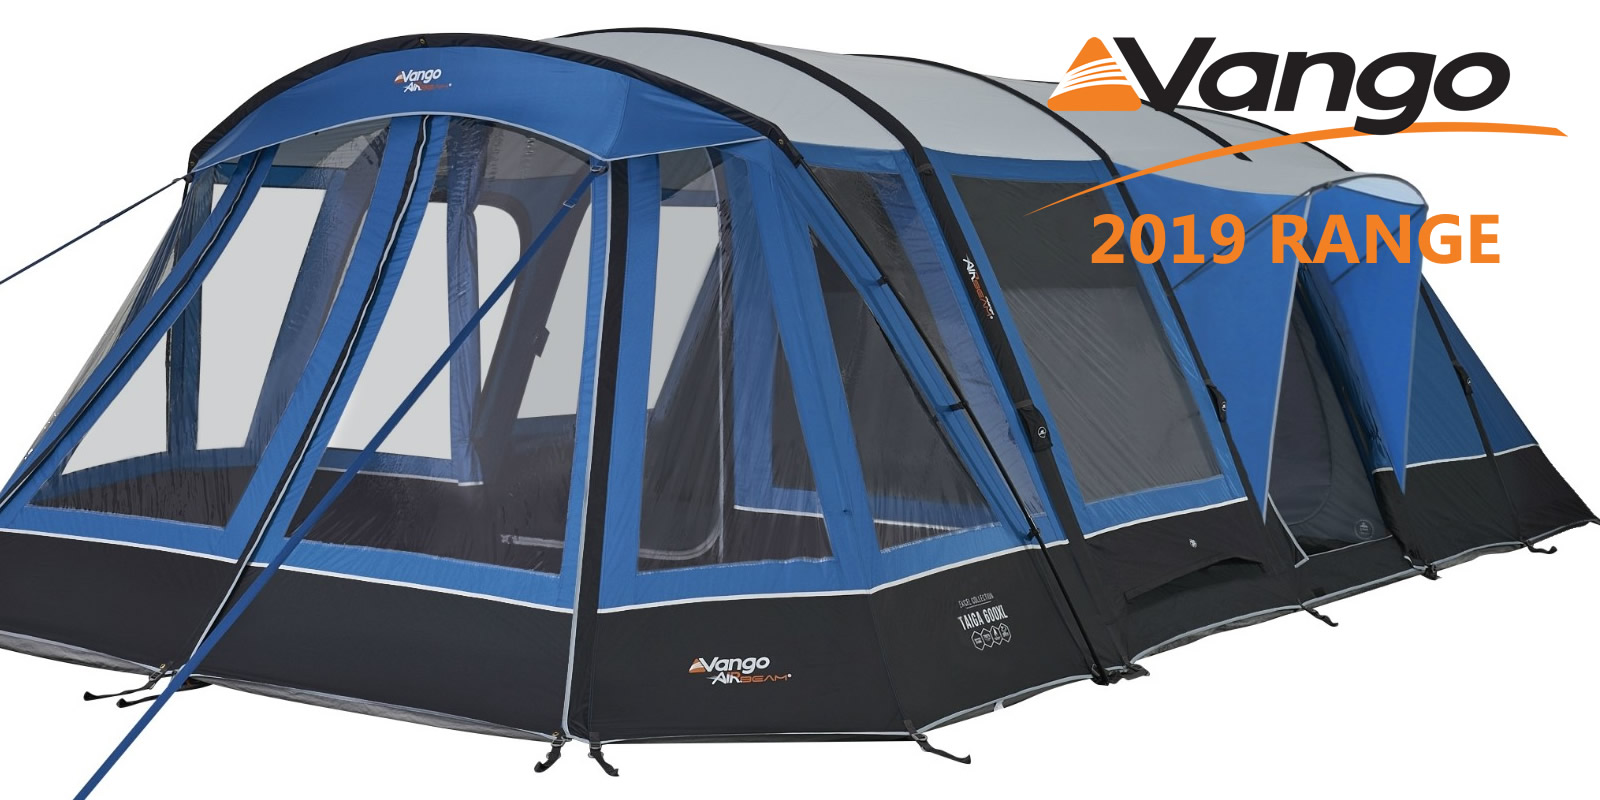 2019 vango tents and awnings available to buy online and instore